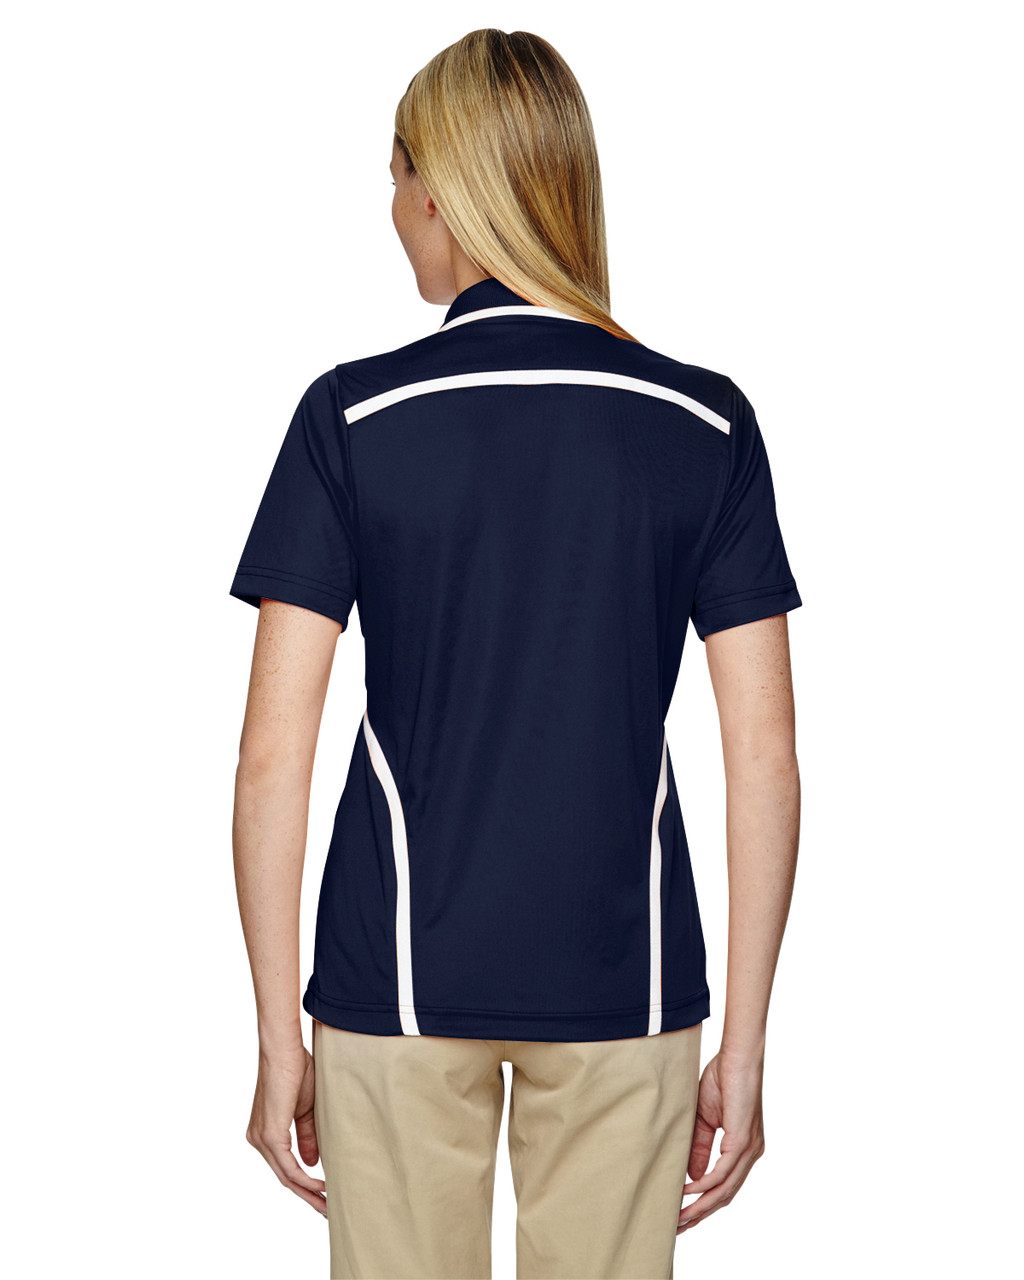 Classic Navy - Back, 75118 Ash City - Extreme Eperformance Propel Interlock Polo Shirt with Contrast Tape   BlankClothing.ca